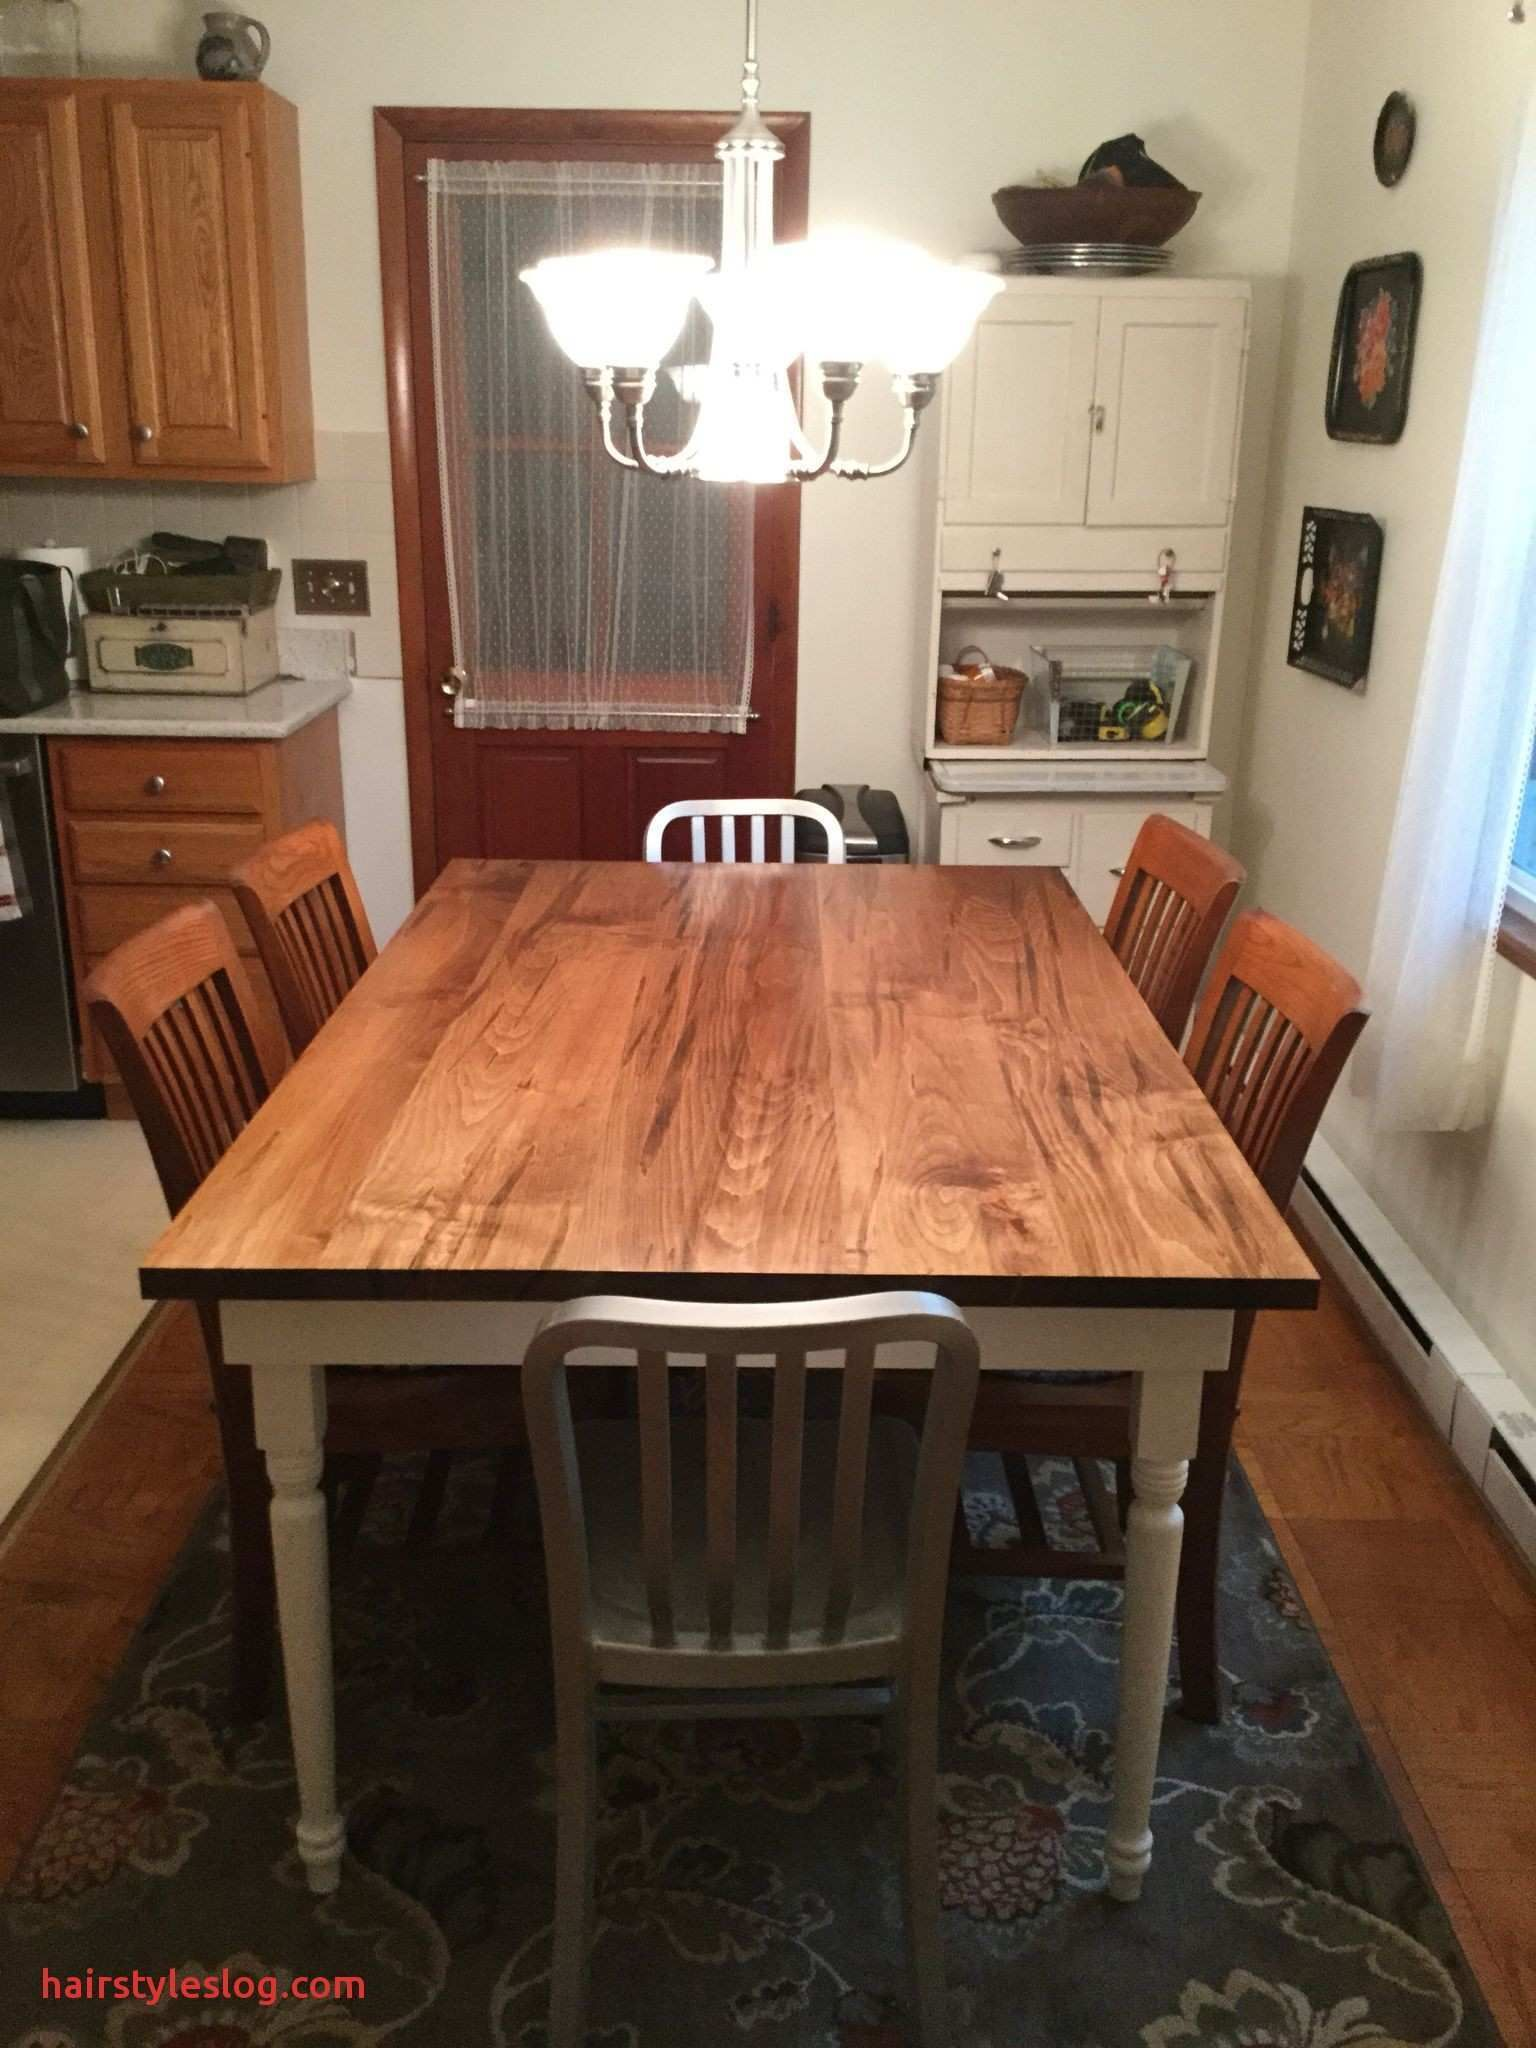 Wonderful Maple Kitchen Table And Chairs Encourage My Husband Made Our New Kitchen Table From Wormy Maple Legs Rainbowinseoul New Kitchen Table Kitchen Table